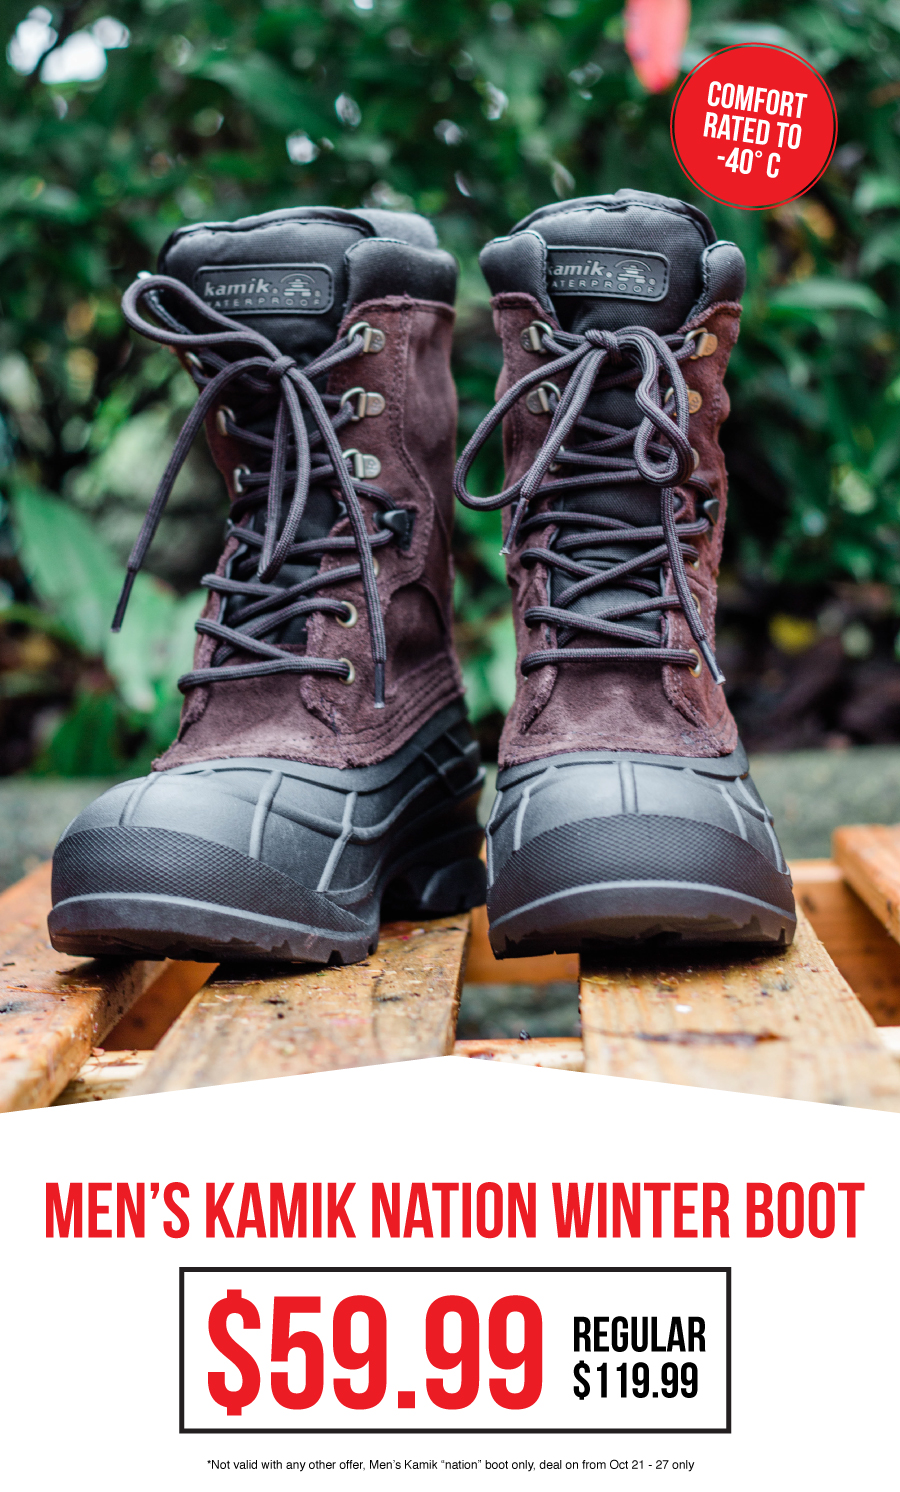 Kamik Boots for $59.99